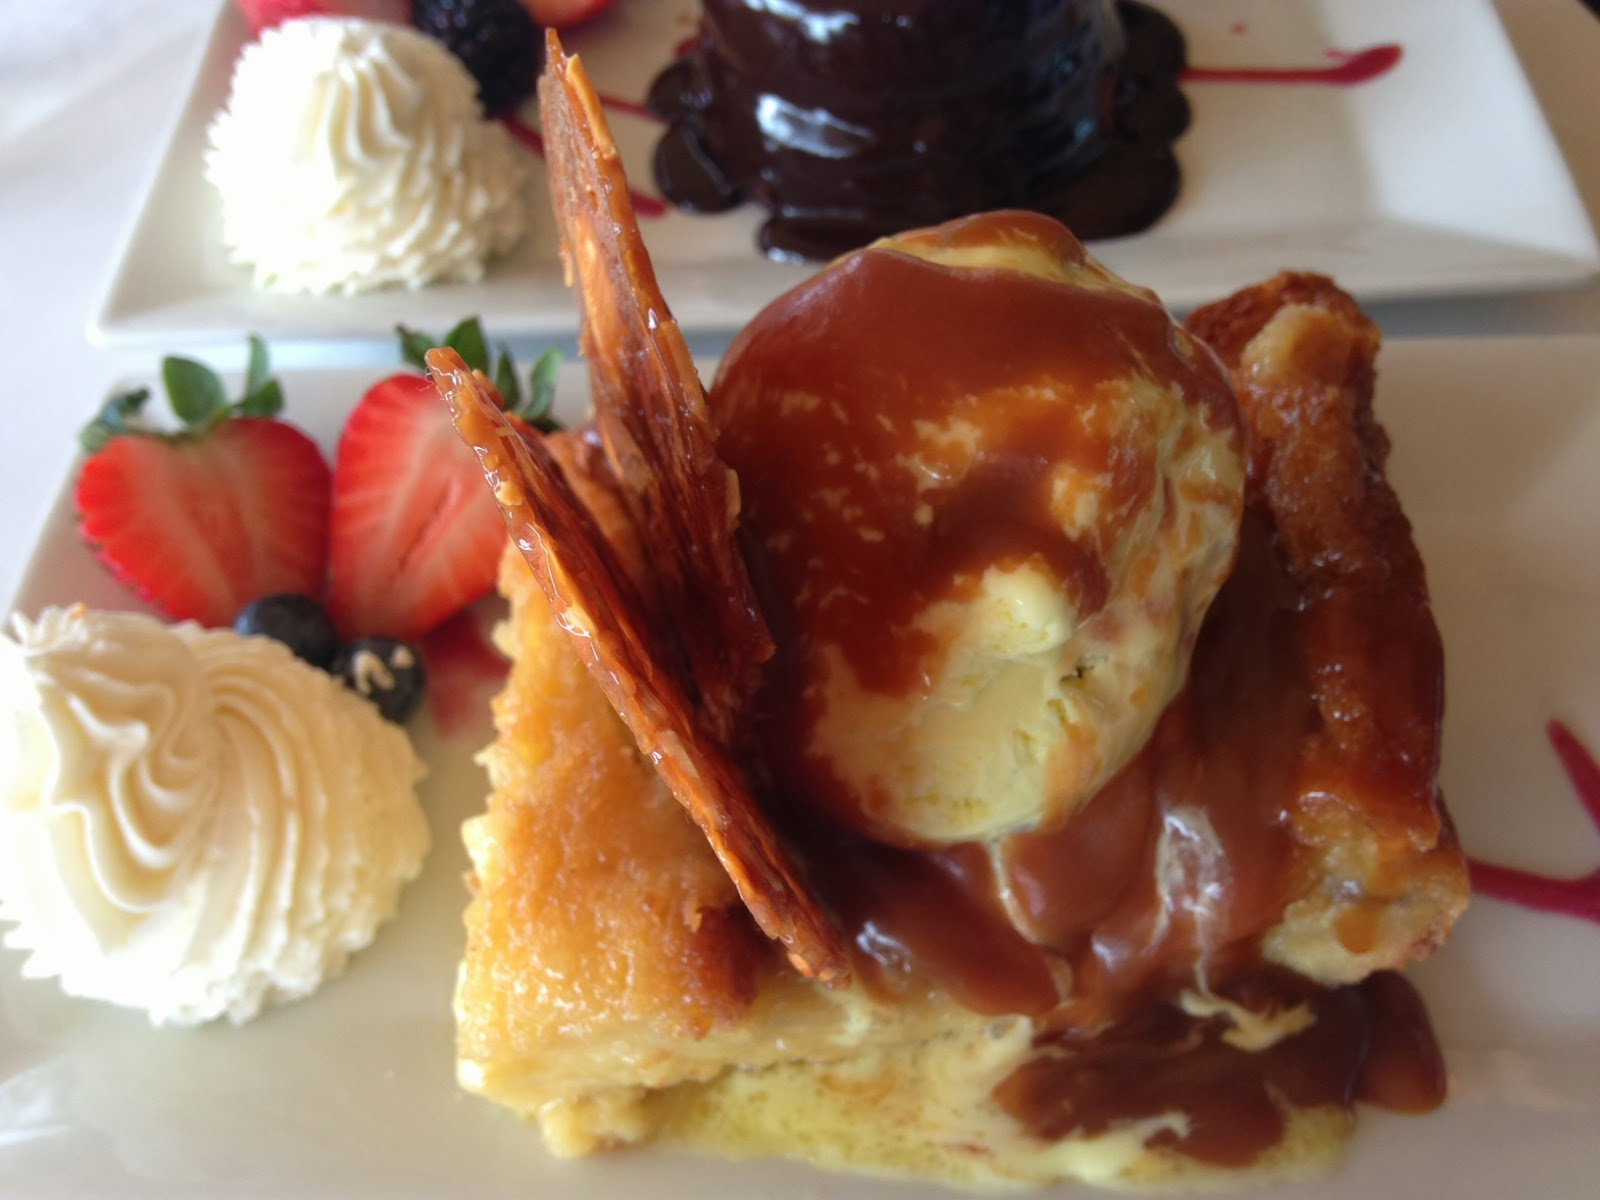 The pastry chef 39 s baking restaurant review blue moon for Blue moon fish company menu